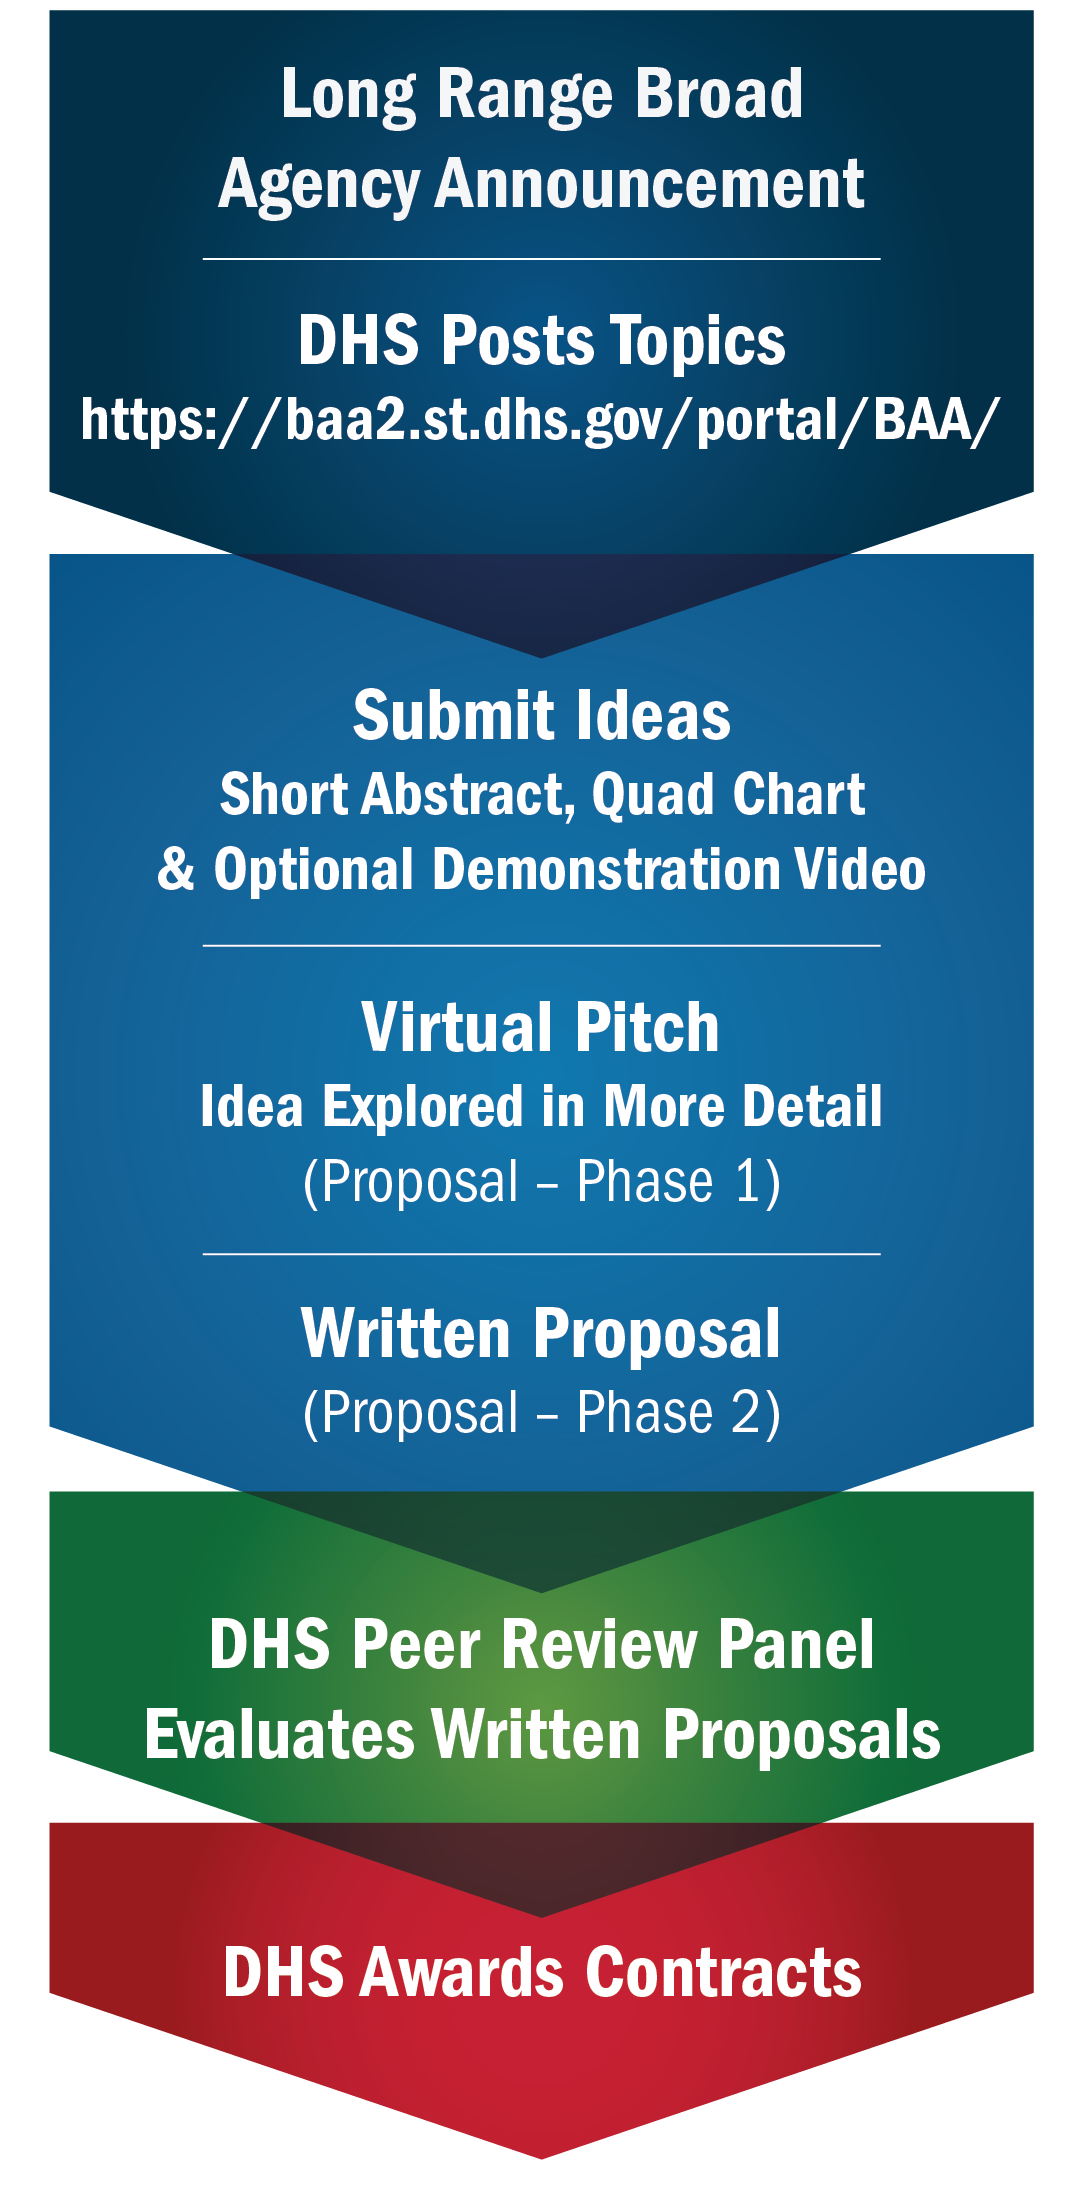 //baa2.st.dhs.gov/portal/BAA.  Submit Ideas: Short Abstract, Quad Chart & Optional Demonstration Video. Virtual Pitch: Idea Explored in More Detail (Proposal - Phase 1); Written Proposal (Proposal - Phase 2). DHS Peer Review Panel, Evaluates Written Proposals. DHS Wwards Contracts.